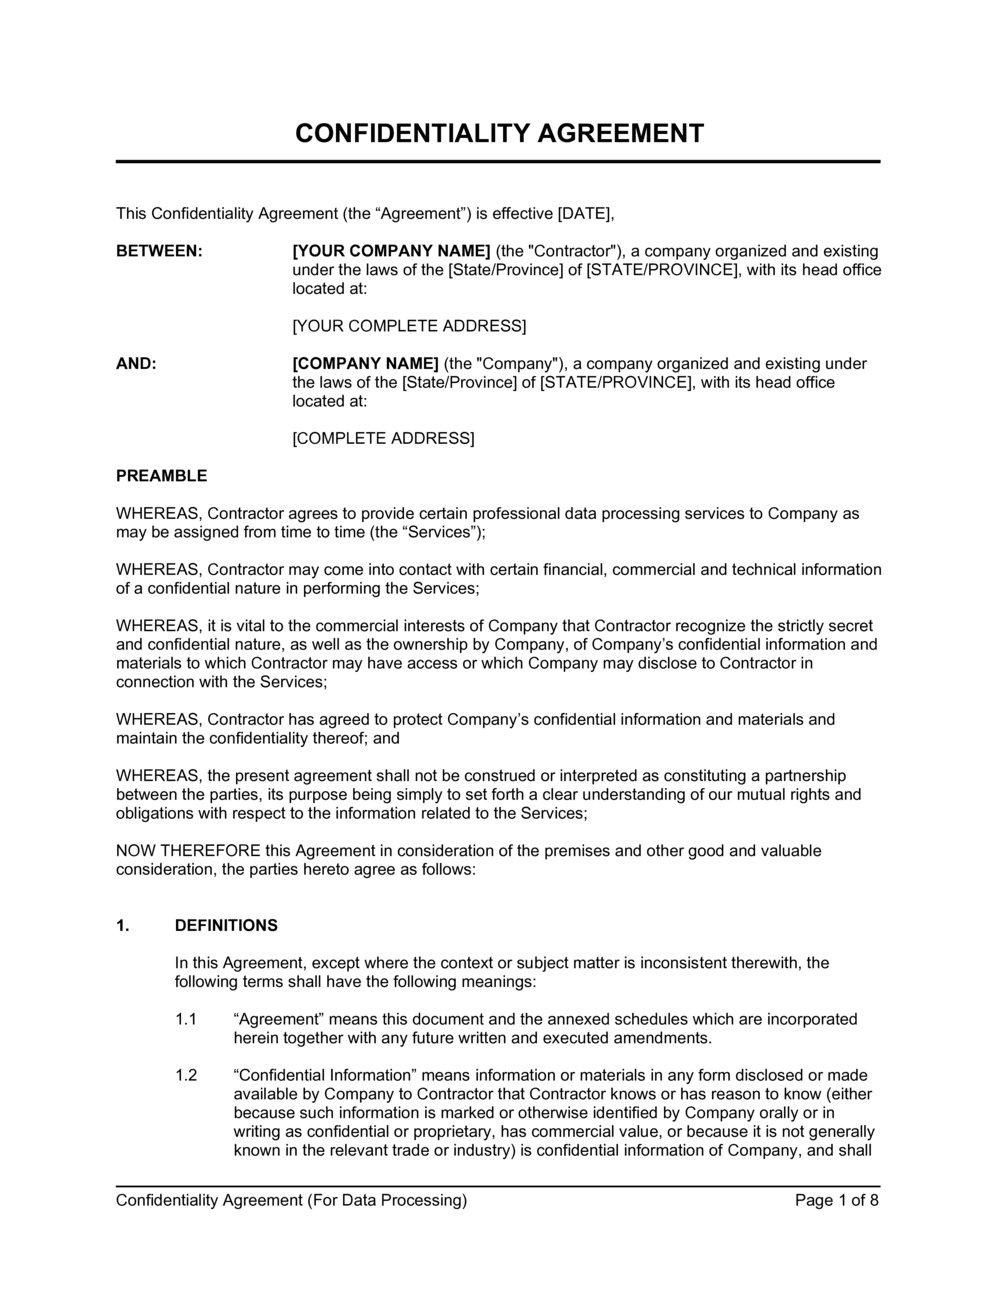 Business-in-a-Box's Confidentiality Agreement (Data Processing Services) Template